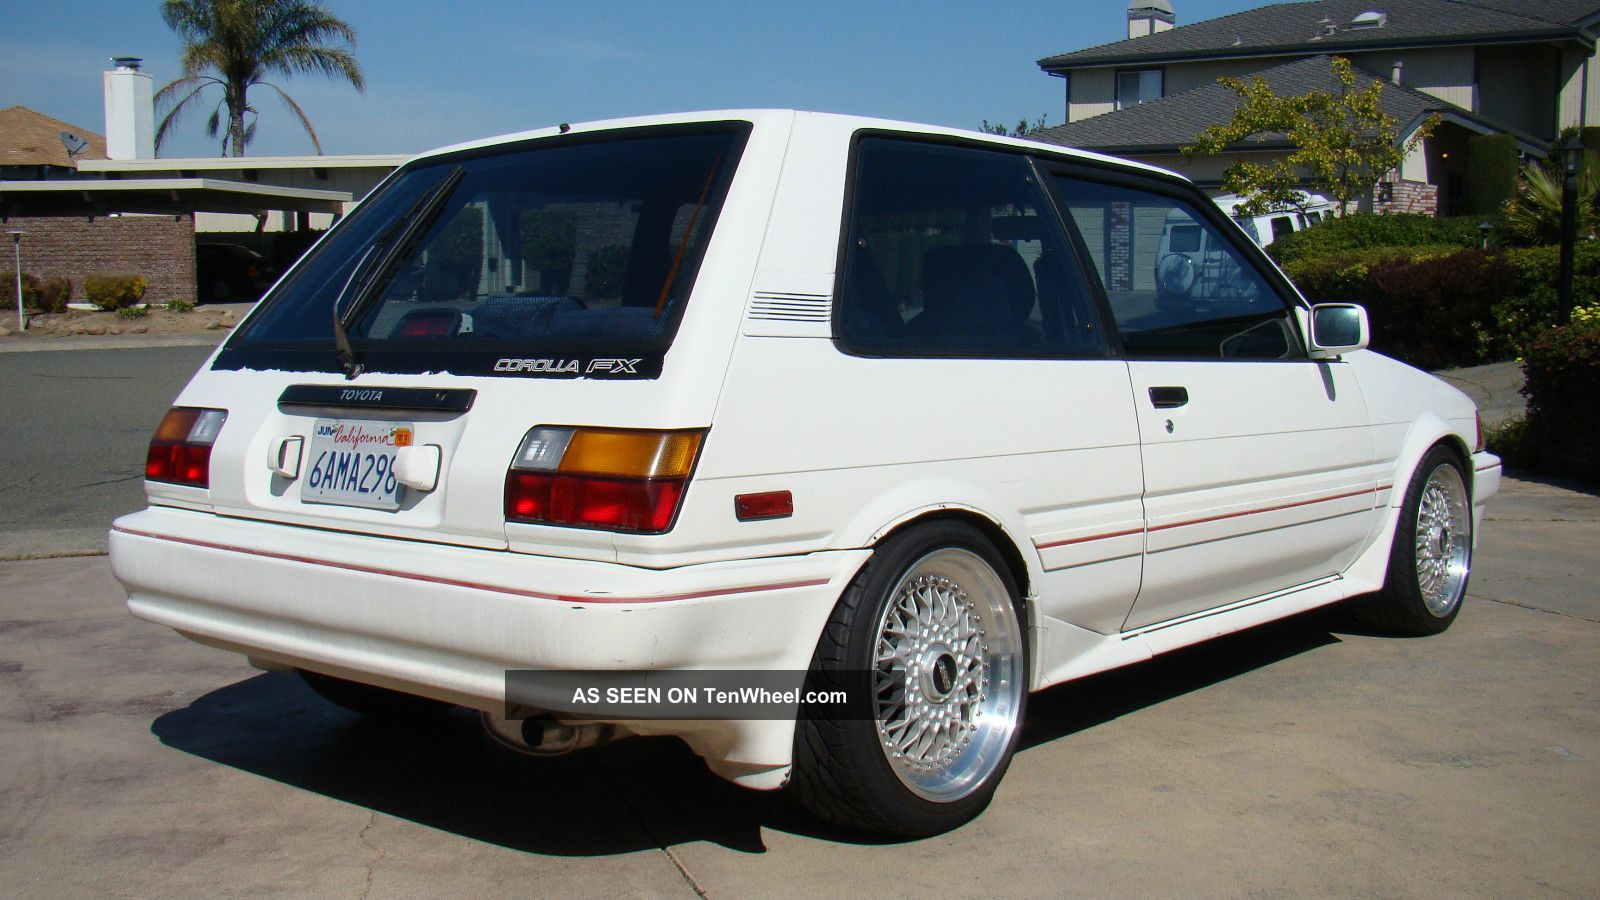 1987 toyota corolla fx 16 gt z on bbs  4agze supercharged 6 speed  custom  30mpg 75 Toyota Corolla 1995 Toyota Corolla